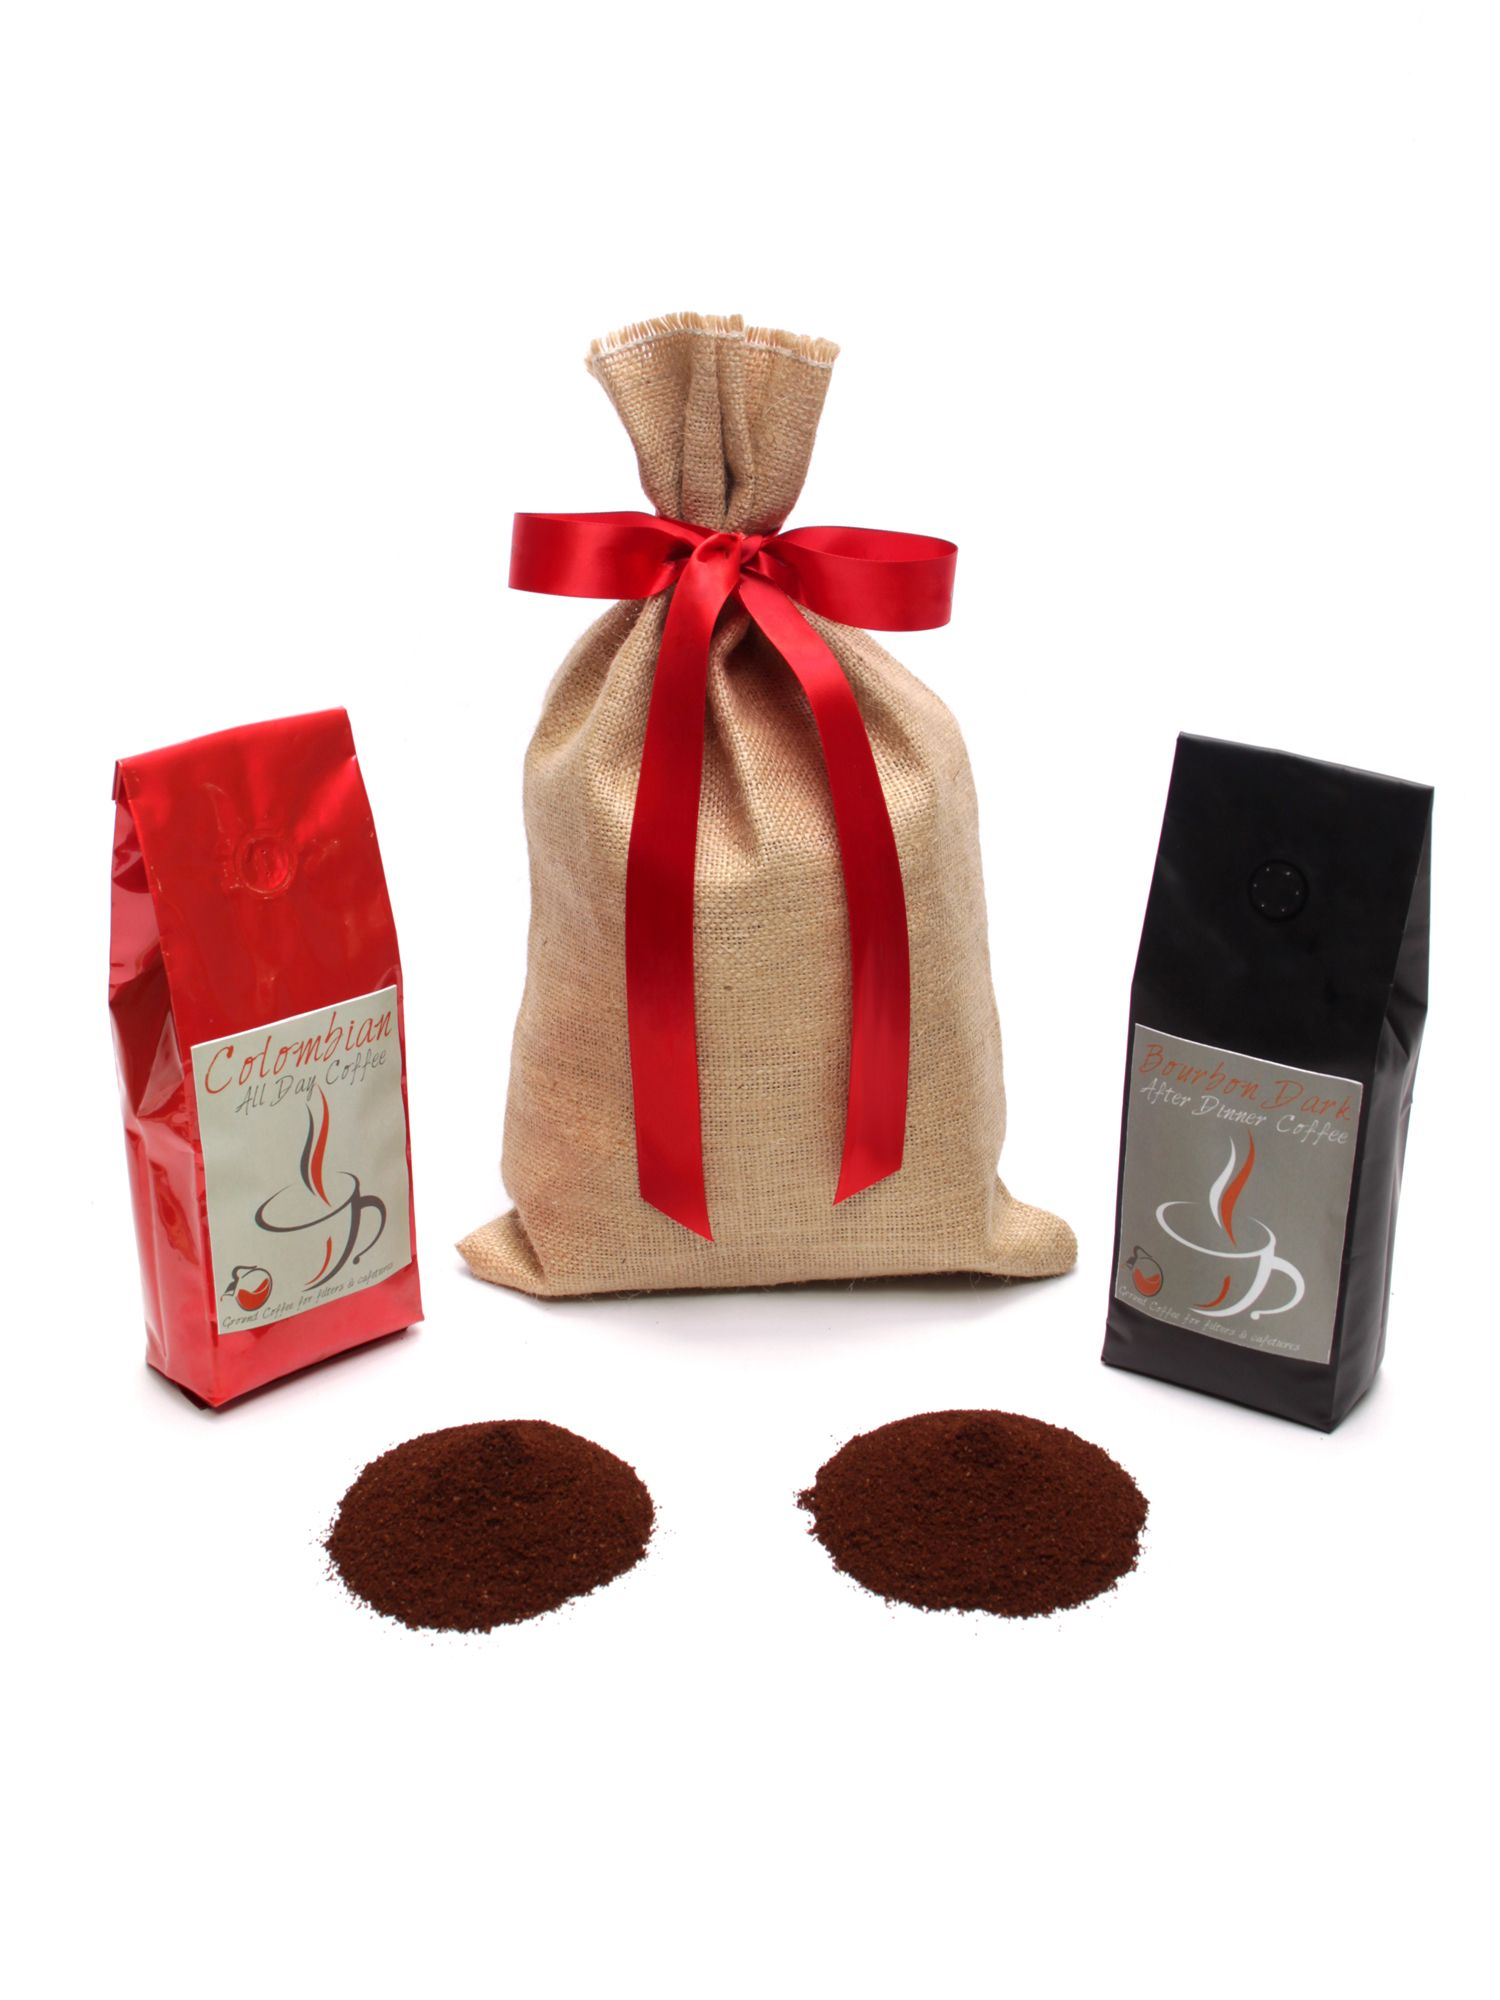 Floric Floric All Day & After Dinner Ground Coffee Hamper